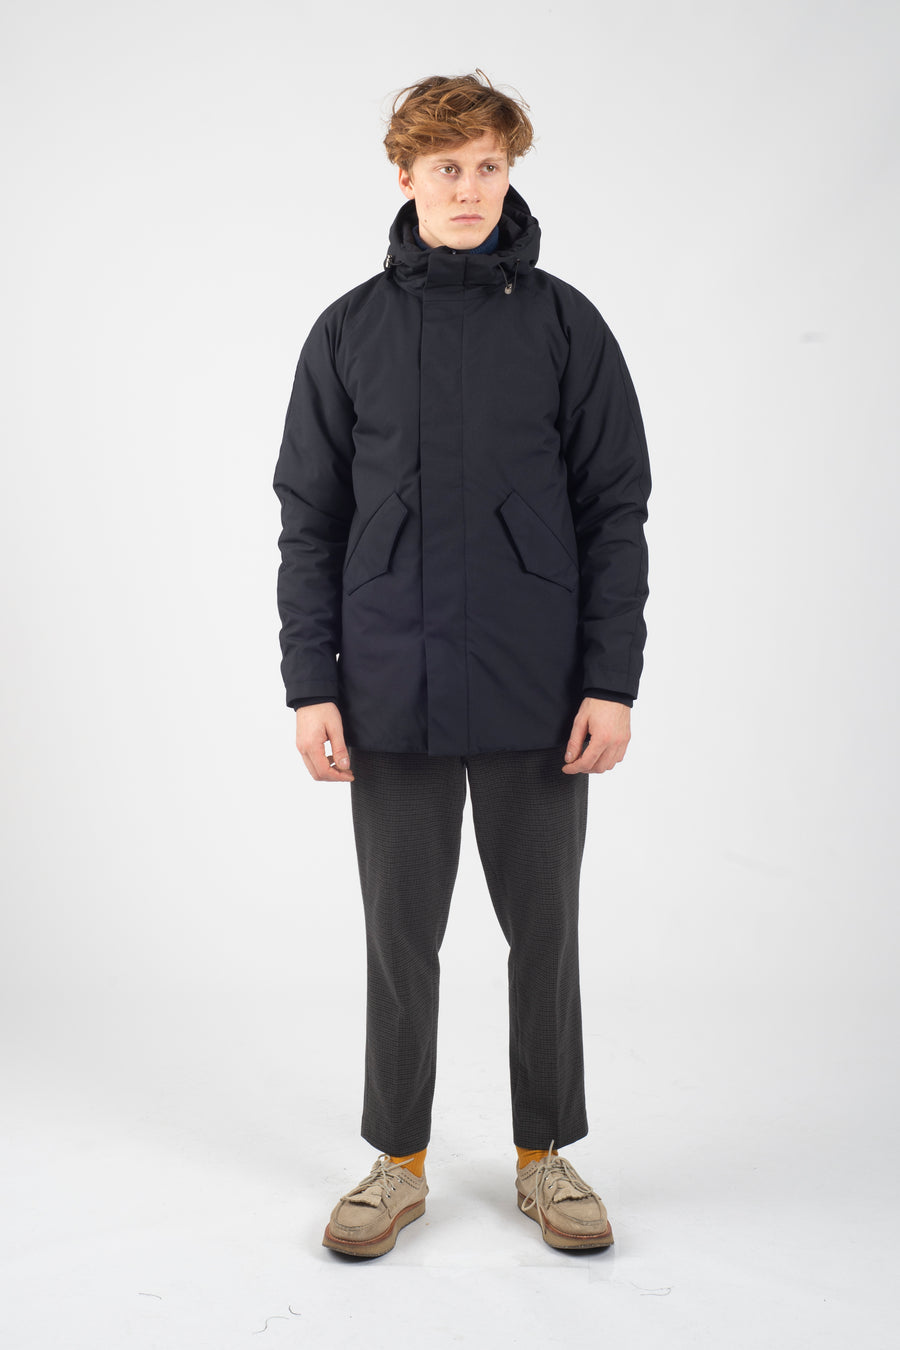 Marinero Parka Poly Rayon Navy - Welter Shelter - Waterproof, Windproof, breathable Packable